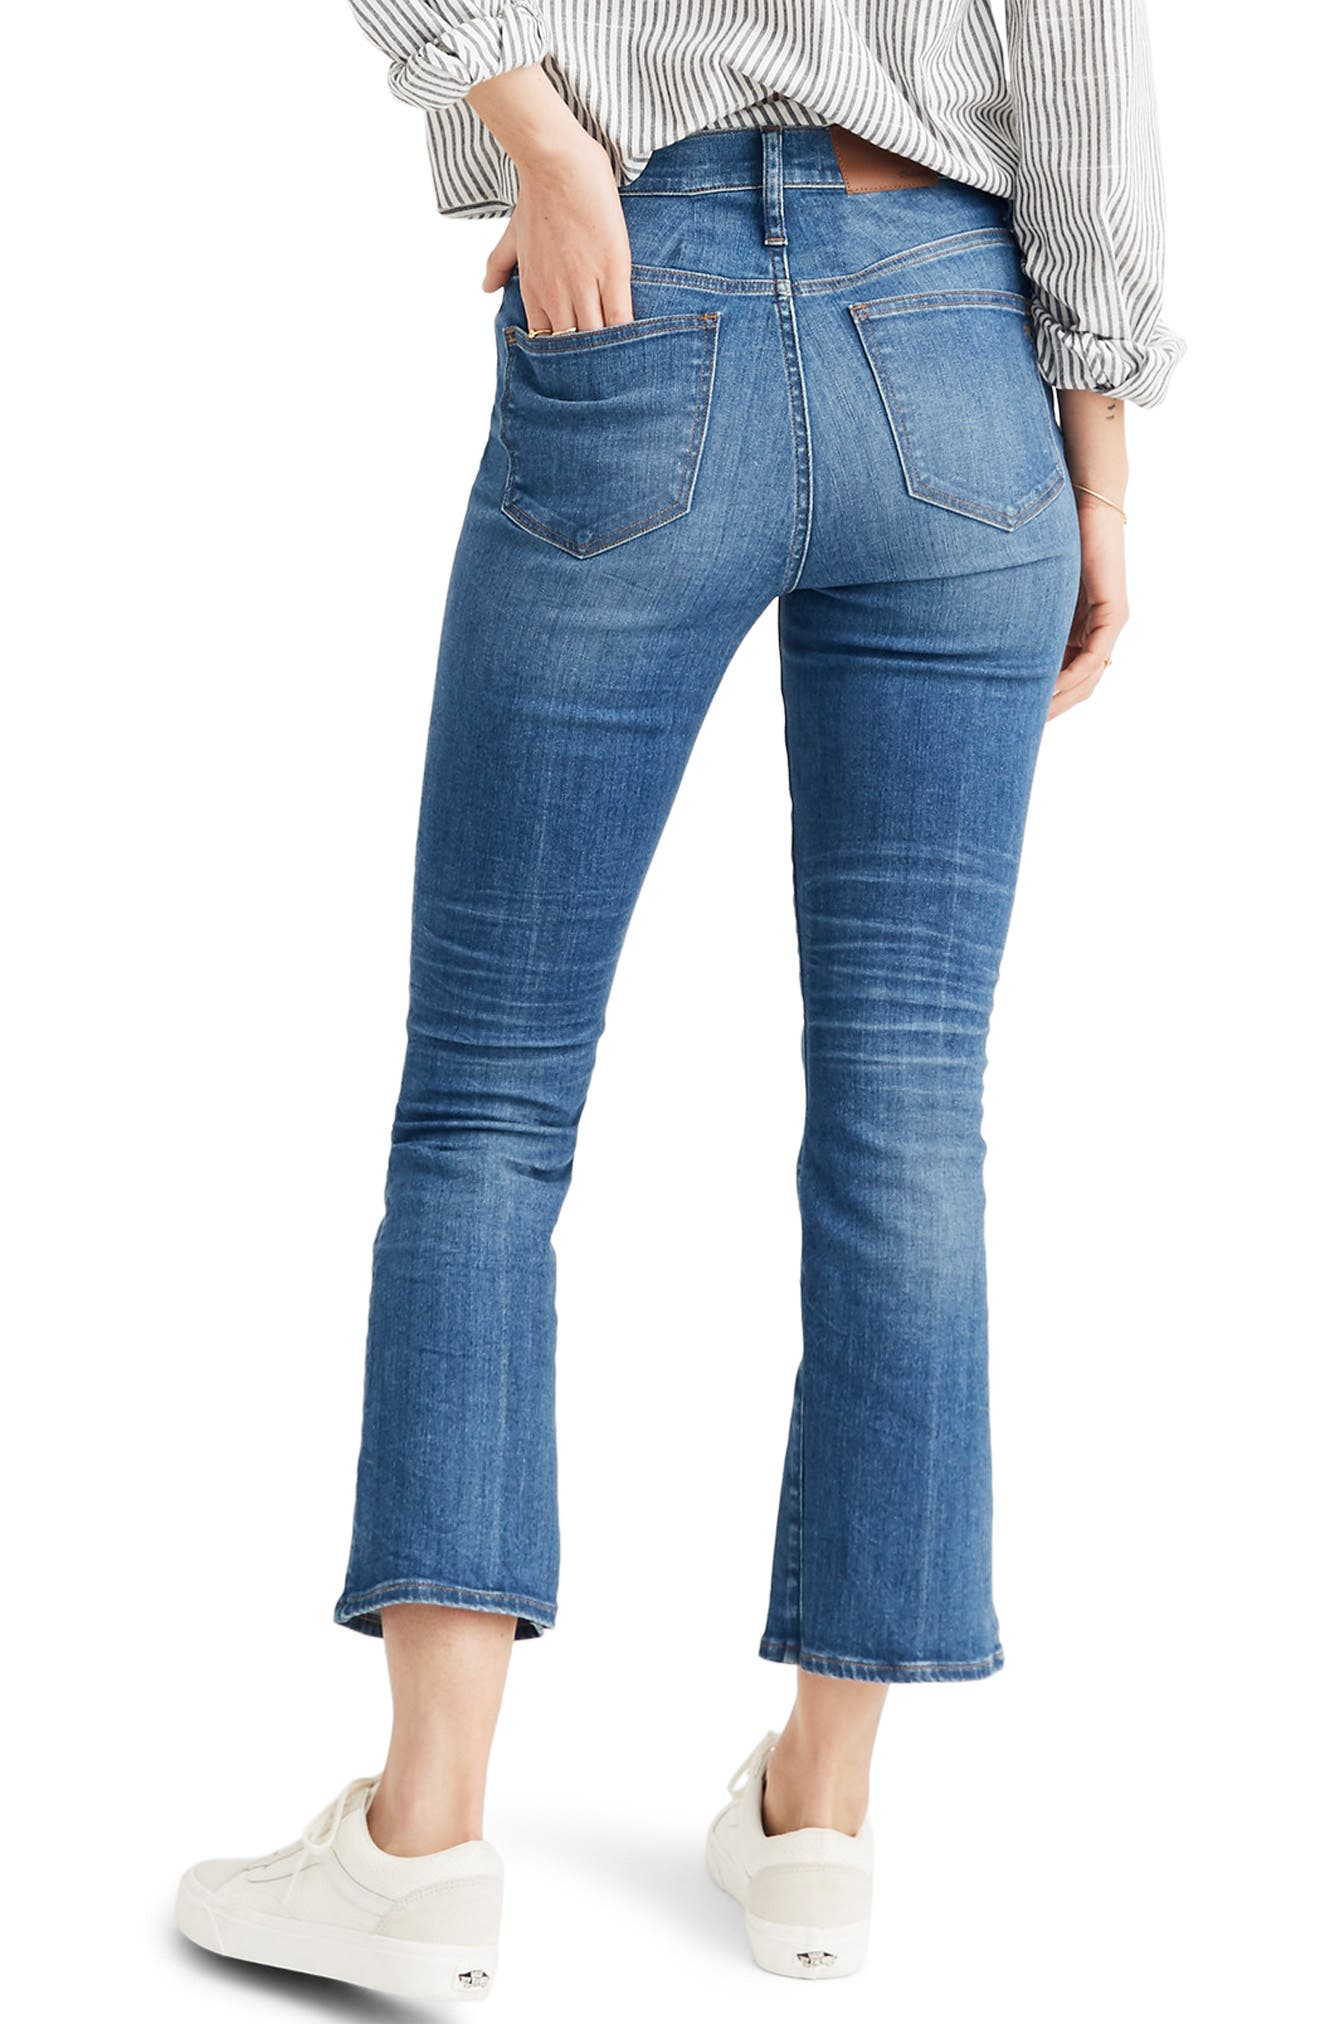 MADEWELL, Eco Edition Cali Demi Boot Jeans, Alternate thumbnail 4, color, TIERNEY WASH